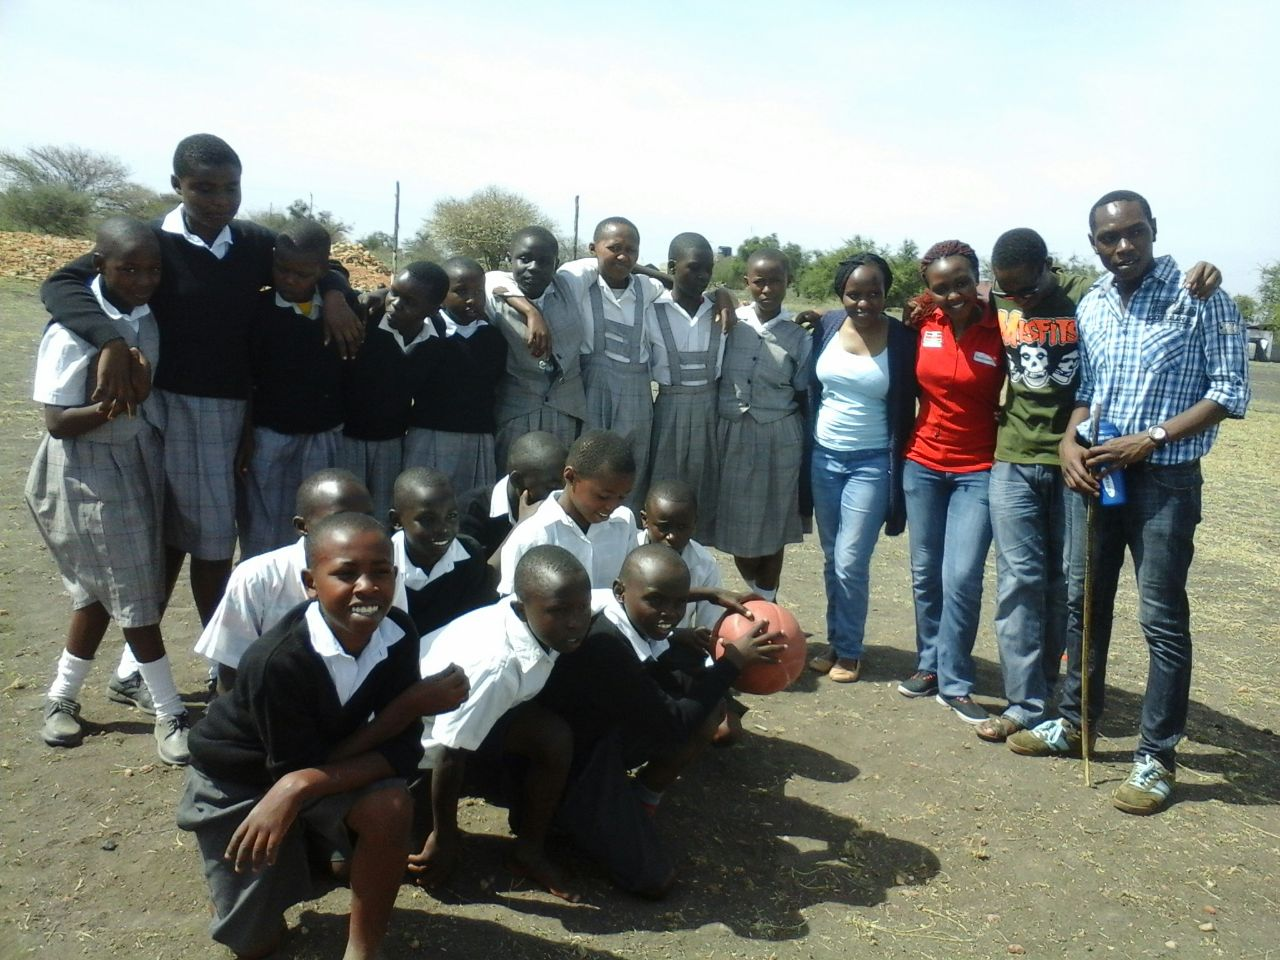 Some of the Mulandi students with LPT members.